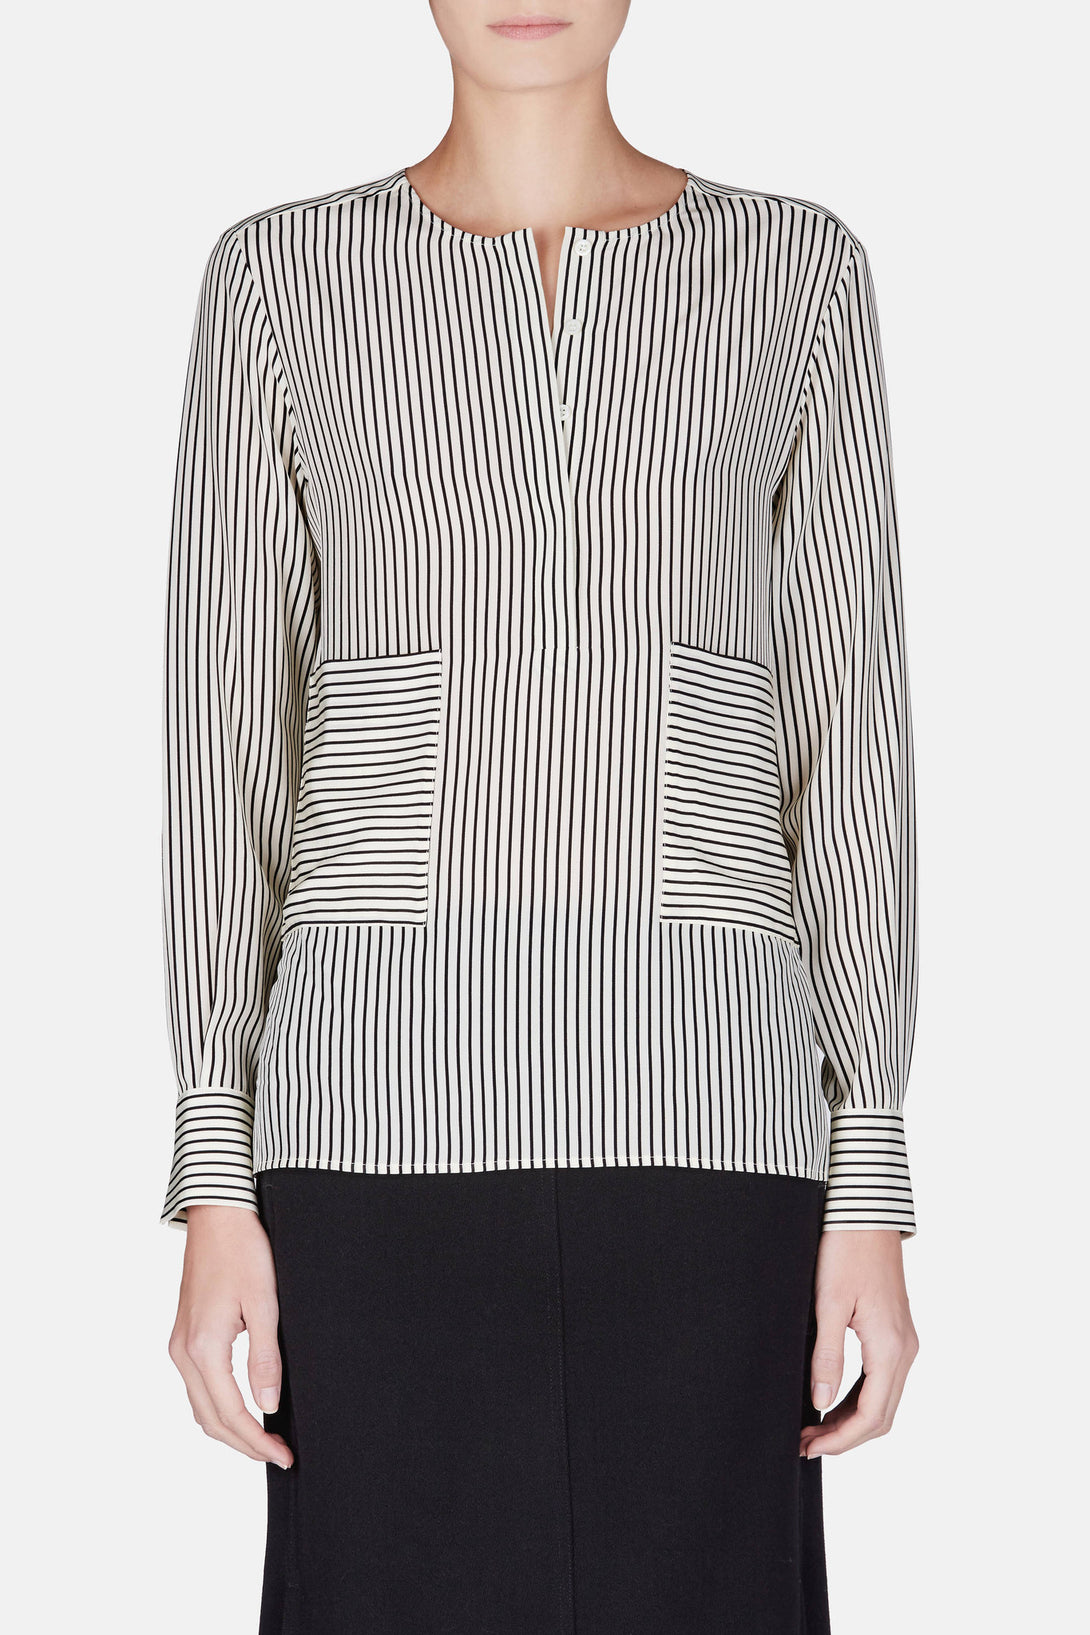 Carnegie Shirt - Cream/Black Pinstripe